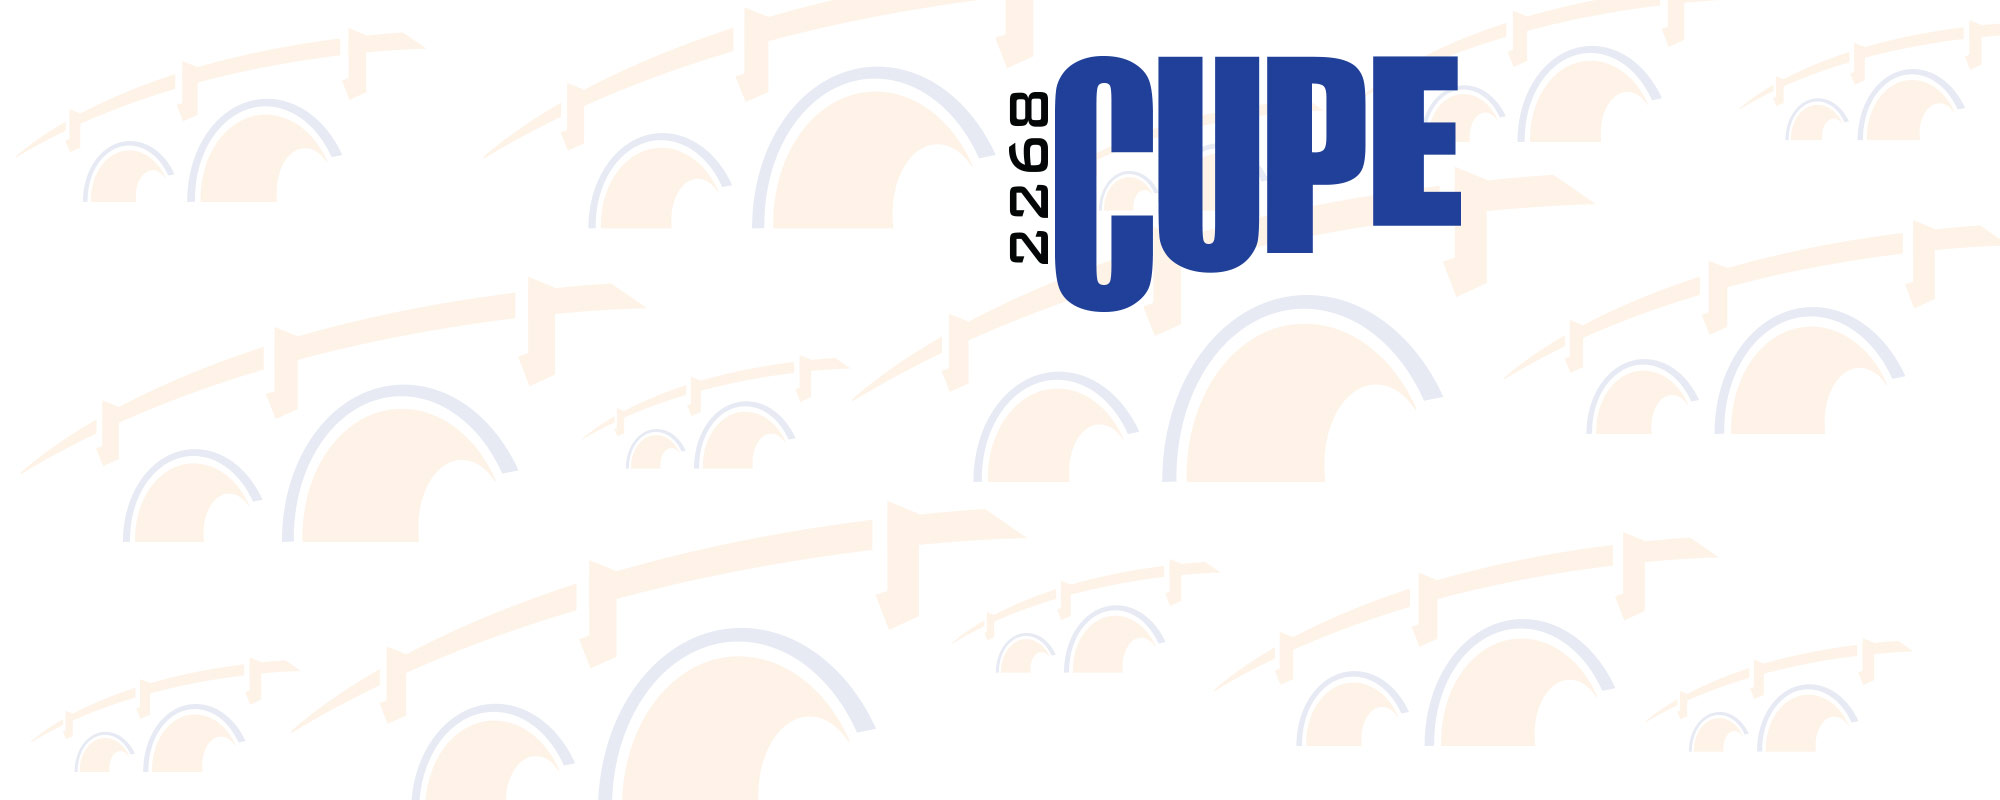 cupe-2268-support-education-saskatoon